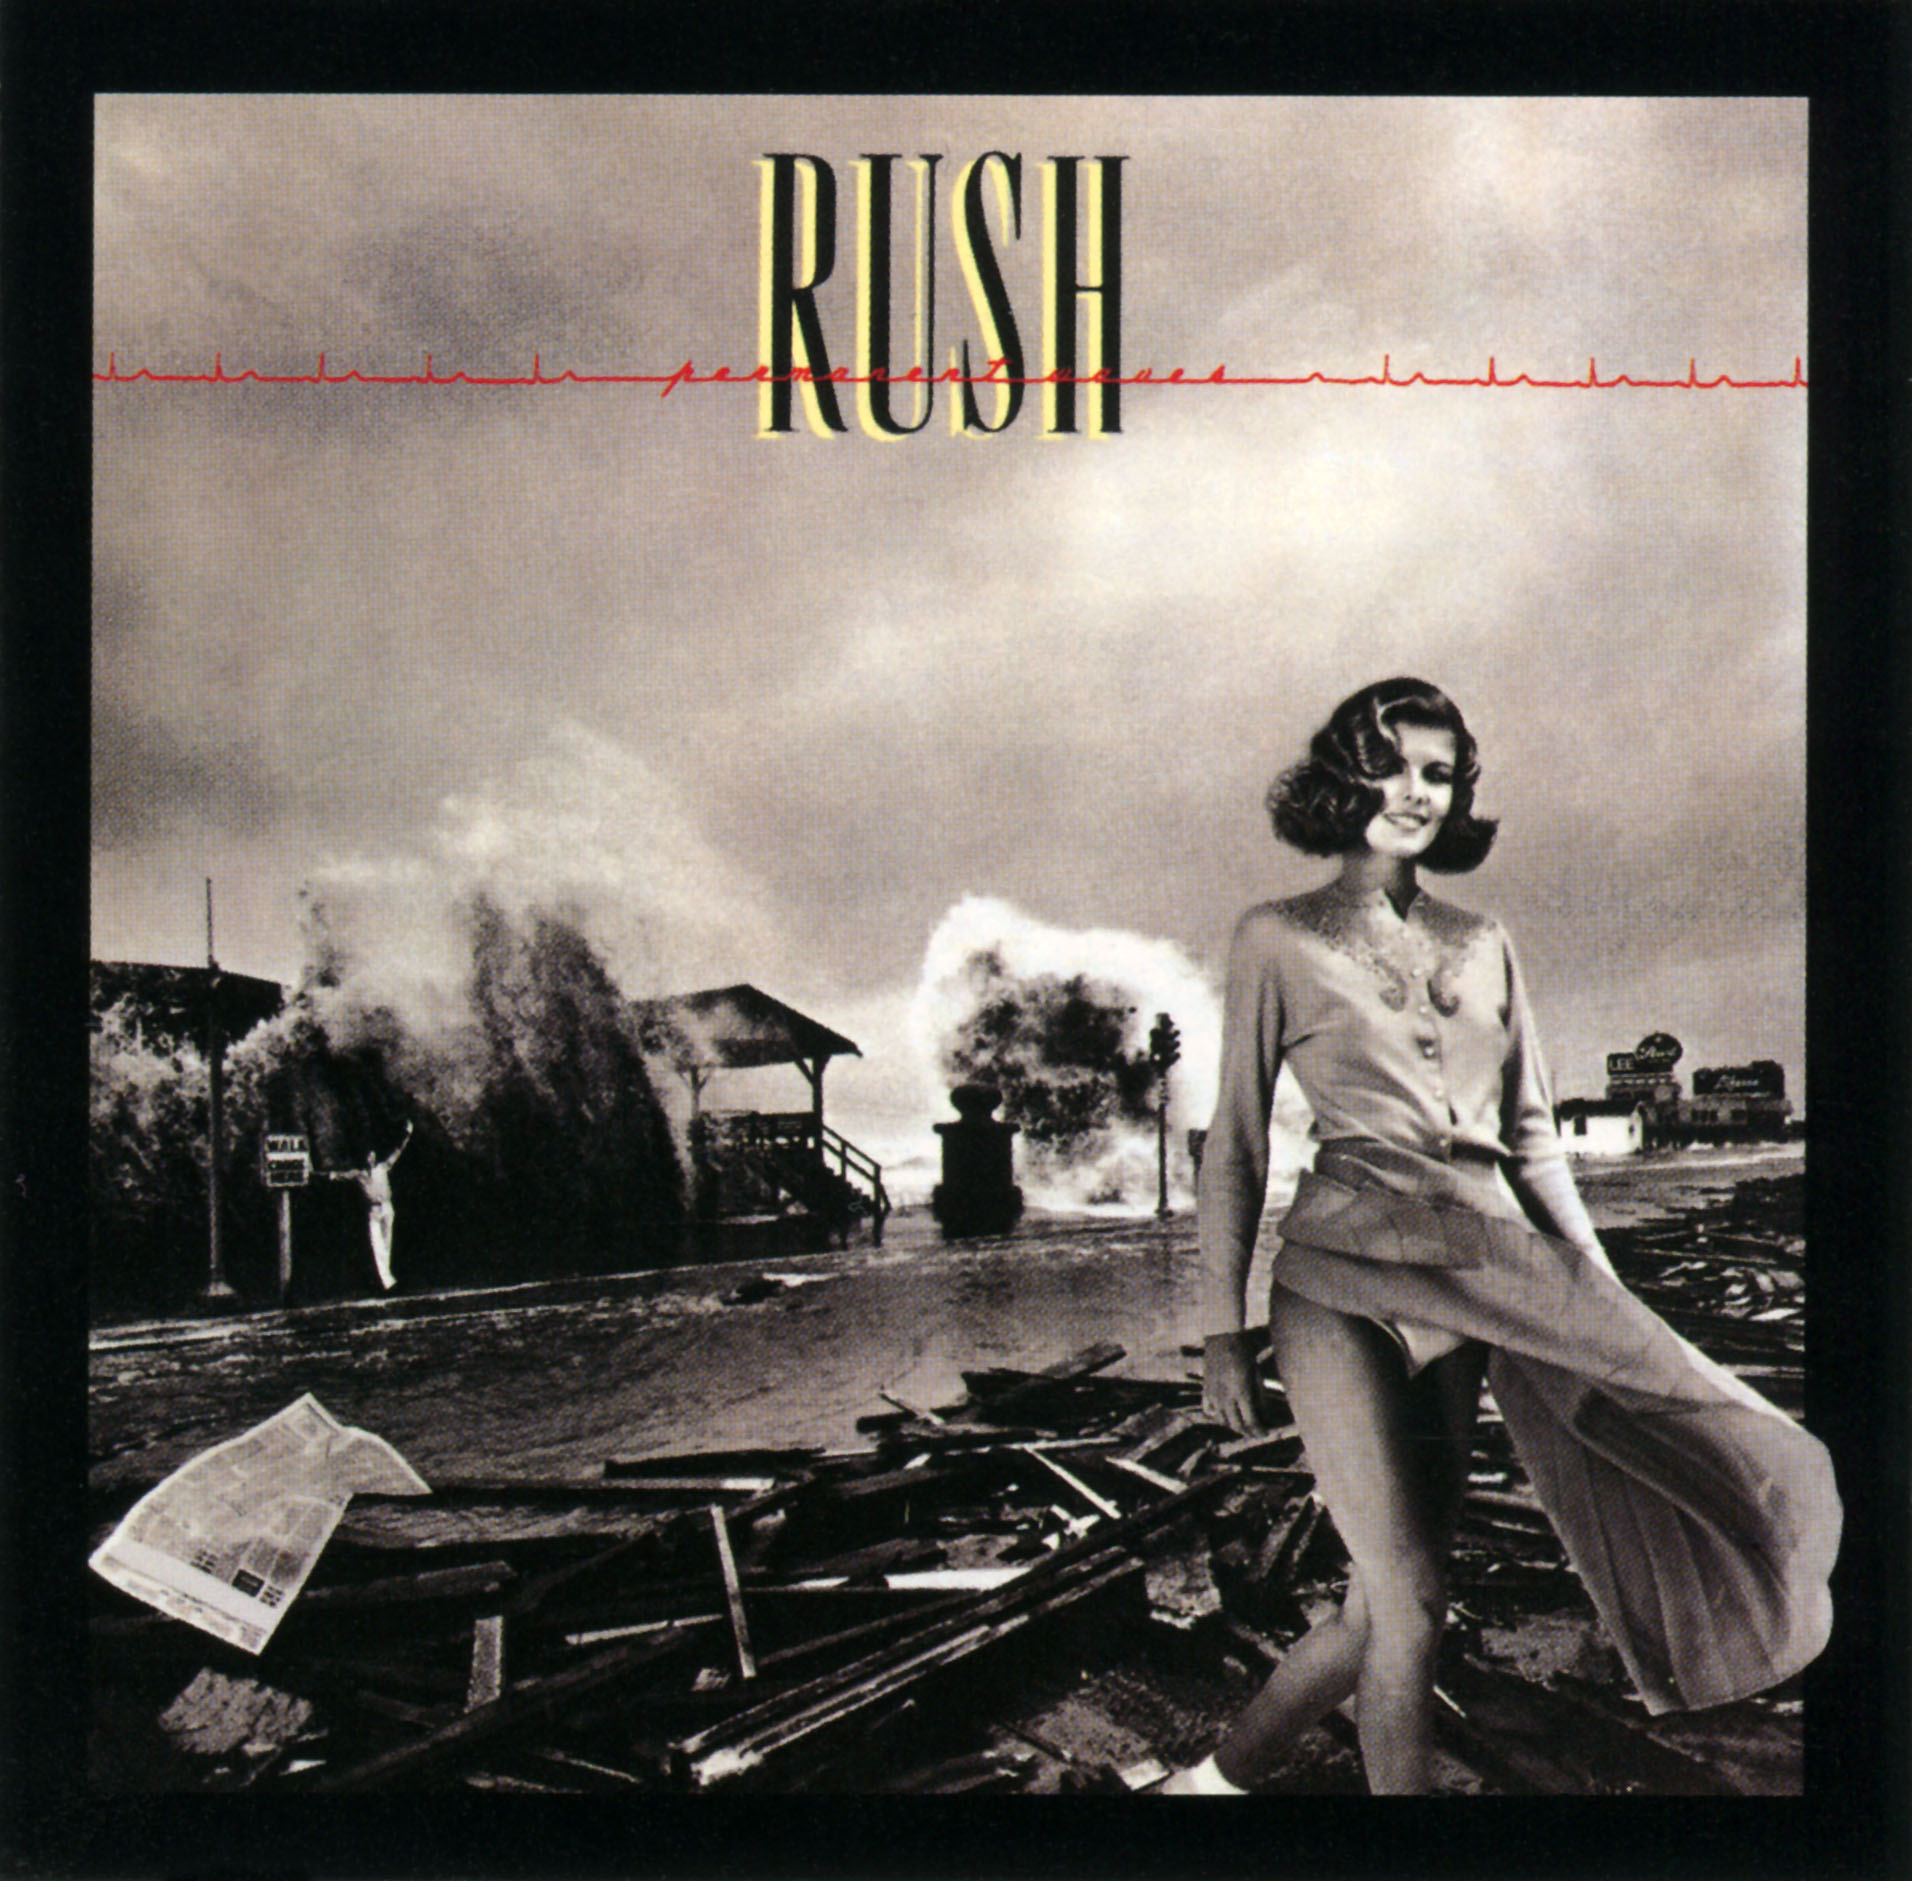 Albums: Rush: Permanent Waves